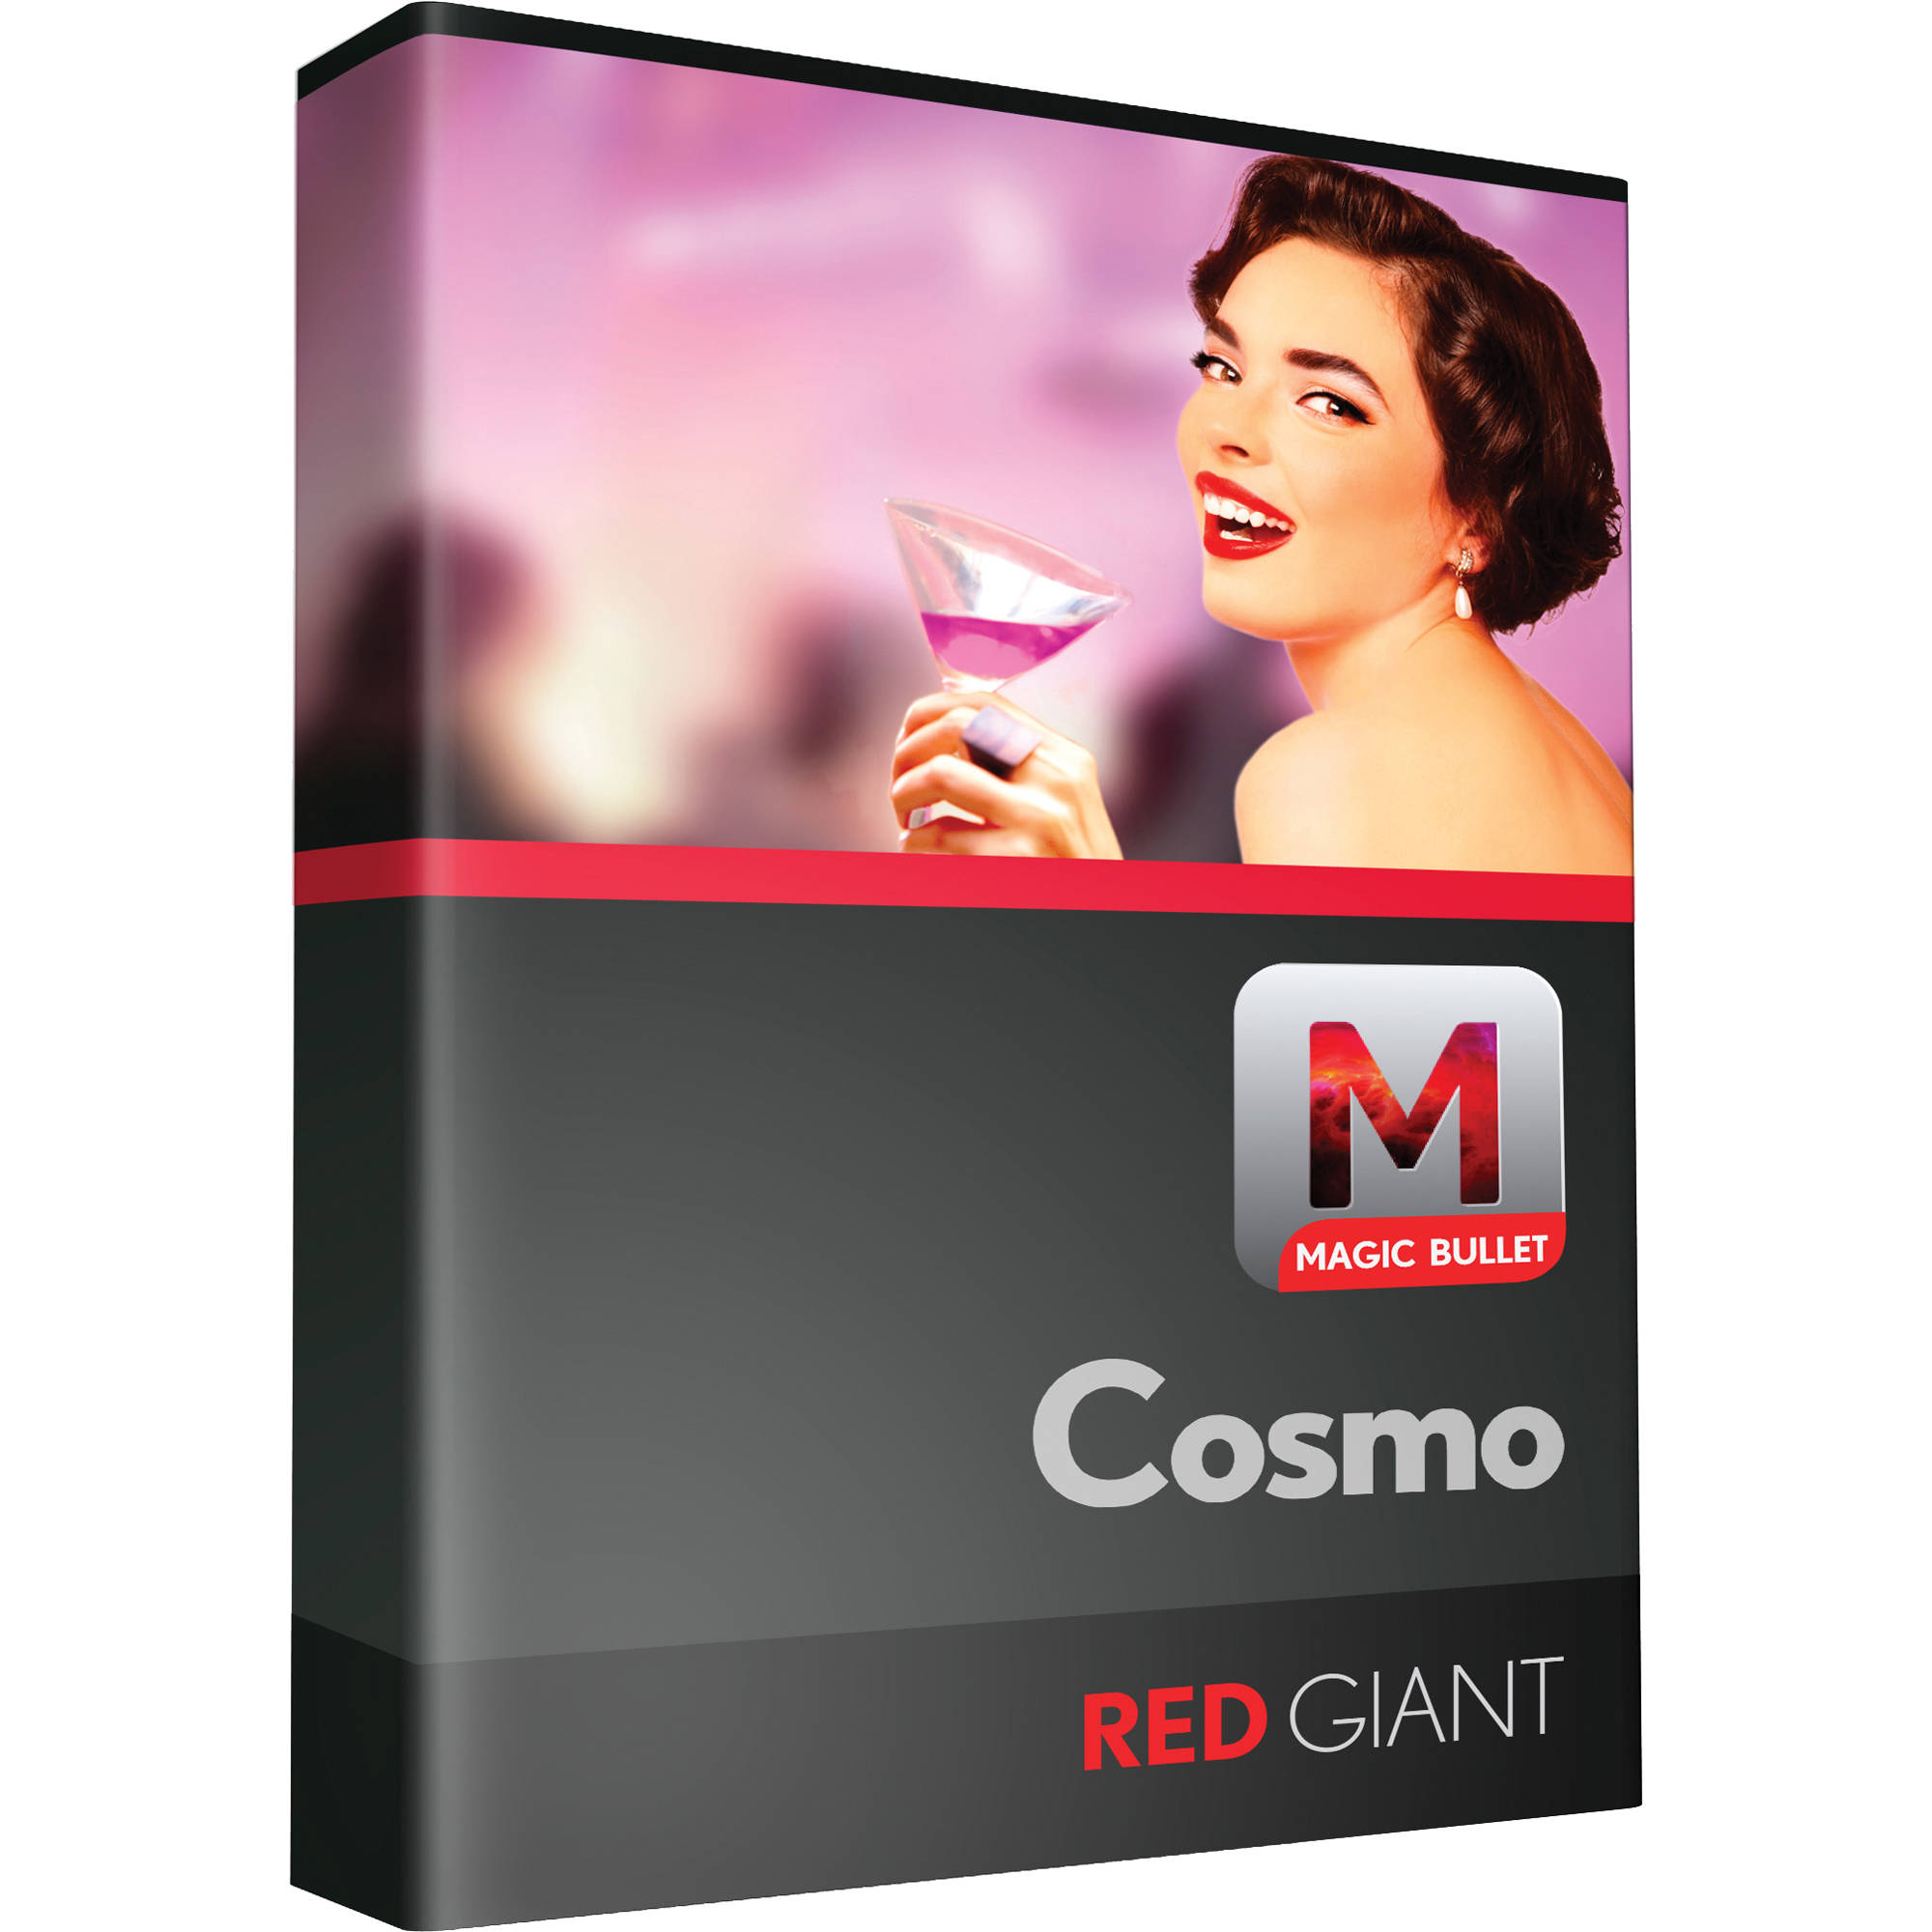 Red Giant Magic Bullet Cosmo 2 0 (Download) MBT-COSMO-D B&H